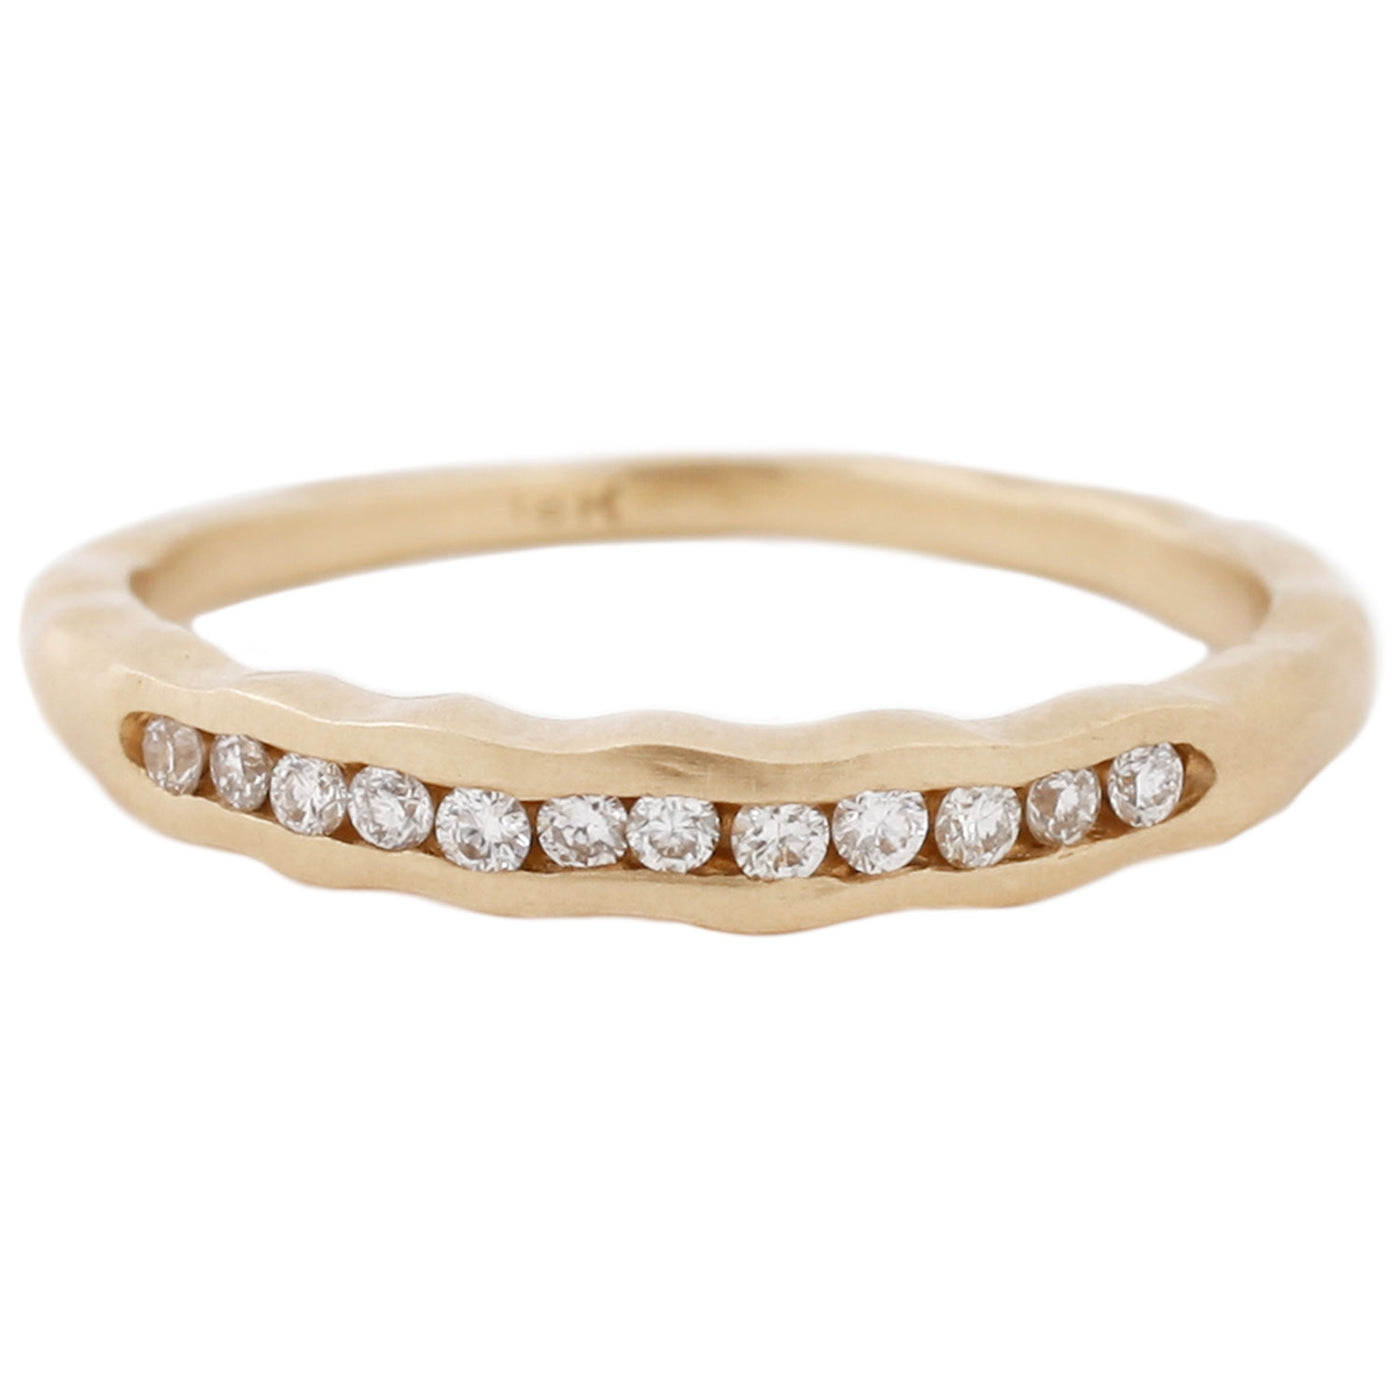 Sarah Swell Gold Tidal Diamond Band Ring